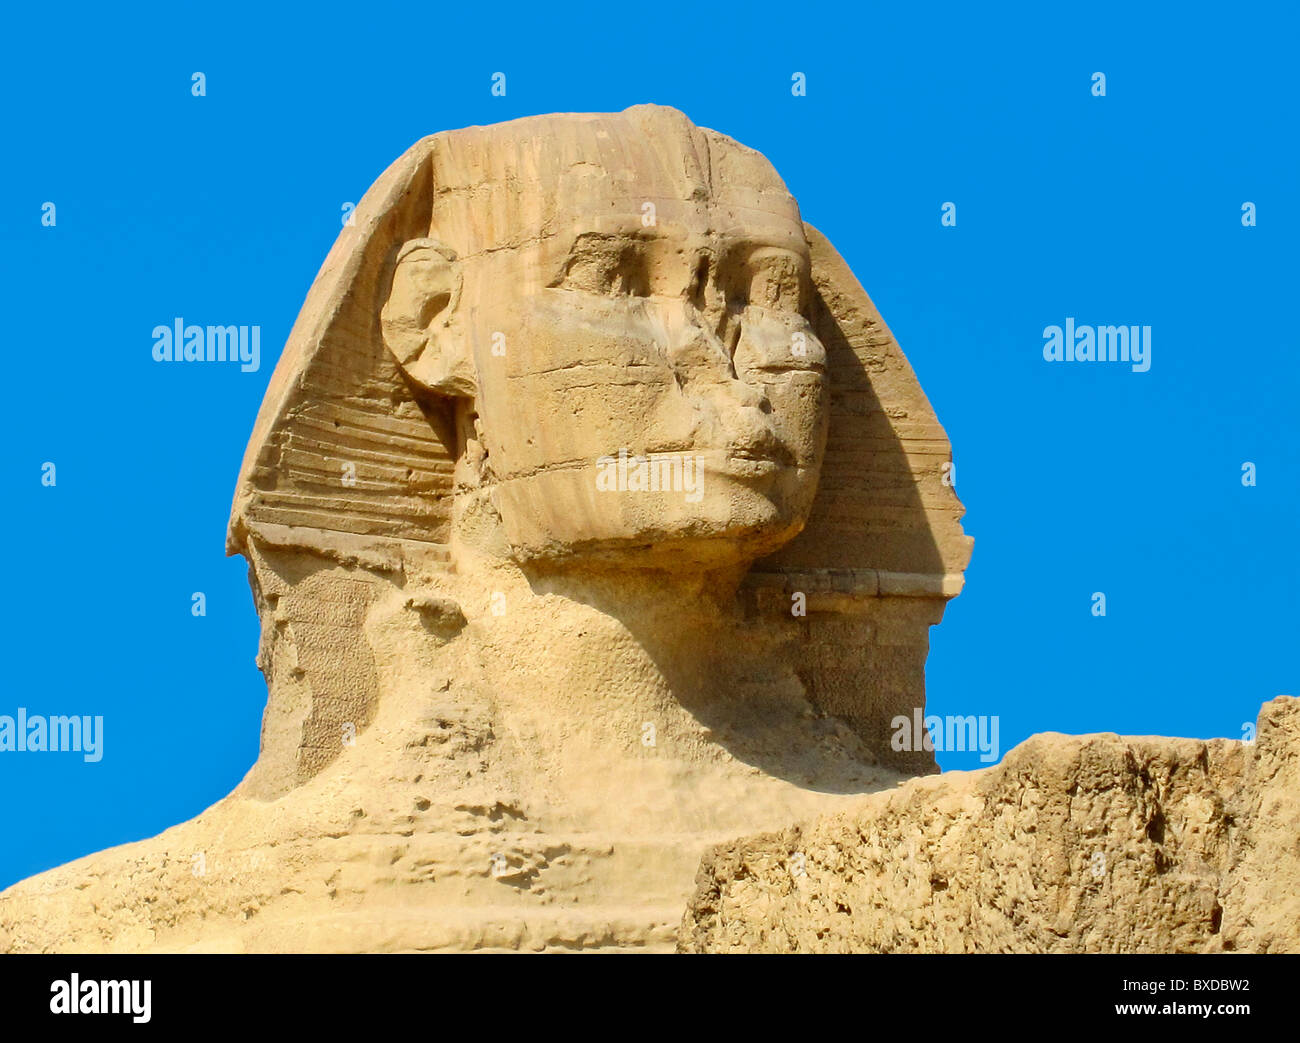 The Sphinx and Chefren Pyramid, Giza, Egypt - Stock Image